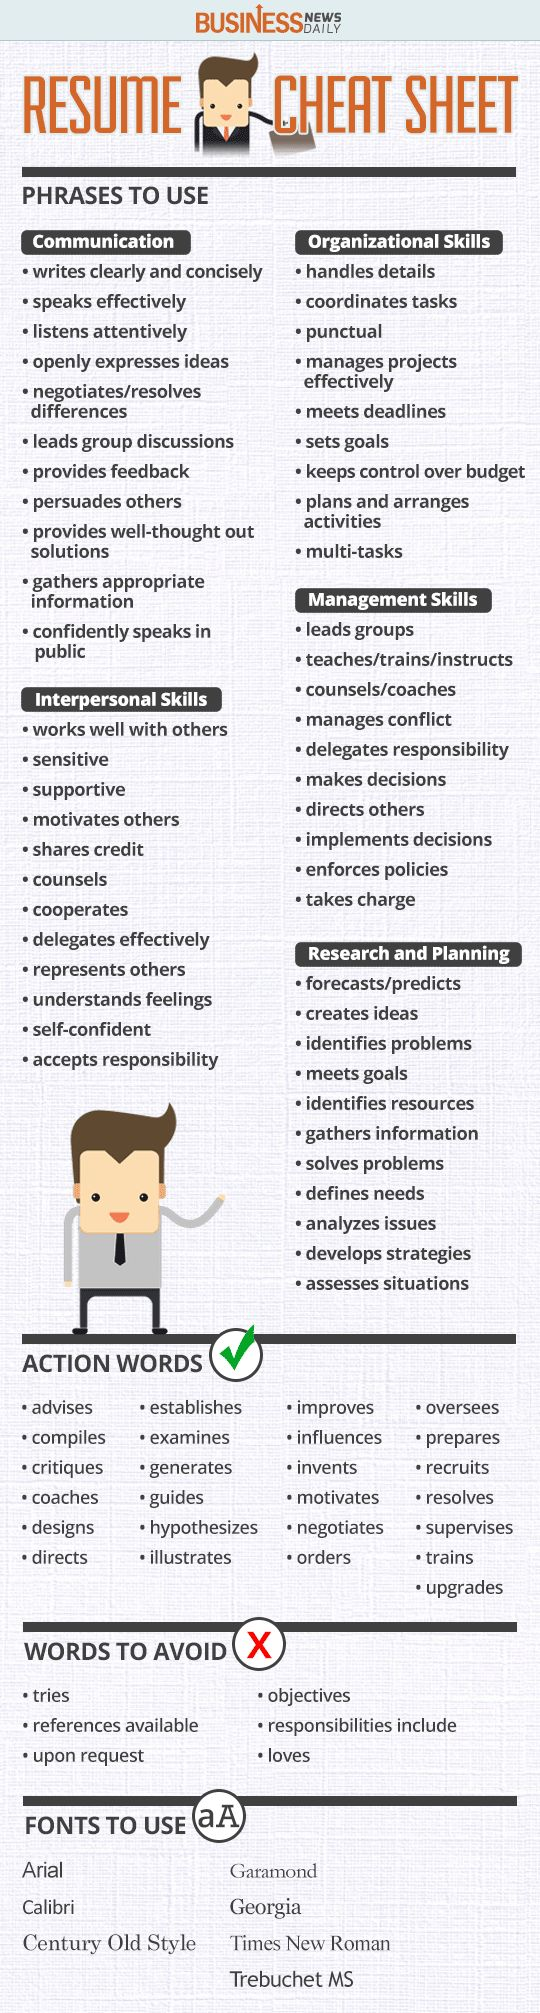 Opposenewapstandardsus  Splendid  Ideas About Resume On Pinterest  Cv Format Resume Cv And  With Handsome Resume Cheat Sheet Infographic Andrews Almost Done With A Complete Unit On Employment Which With Easy On The Eye Ux Design Resume Also Security Officer Resume Objective In Addition Phlebotomy Resumes And Best Resume Creator As Well As High School Resume Skills Additionally Customer Service Associate Resume From Pinterestcom With Opposenewapstandardsus  Handsome  Ideas About Resume On Pinterest  Cv Format Resume Cv And  With Easy On The Eye Resume Cheat Sheet Infographic Andrews Almost Done With A Complete Unit On Employment Which And Splendid Ux Design Resume Also Security Officer Resume Objective In Addition Phlebotomy Resumes From Pinterestcom